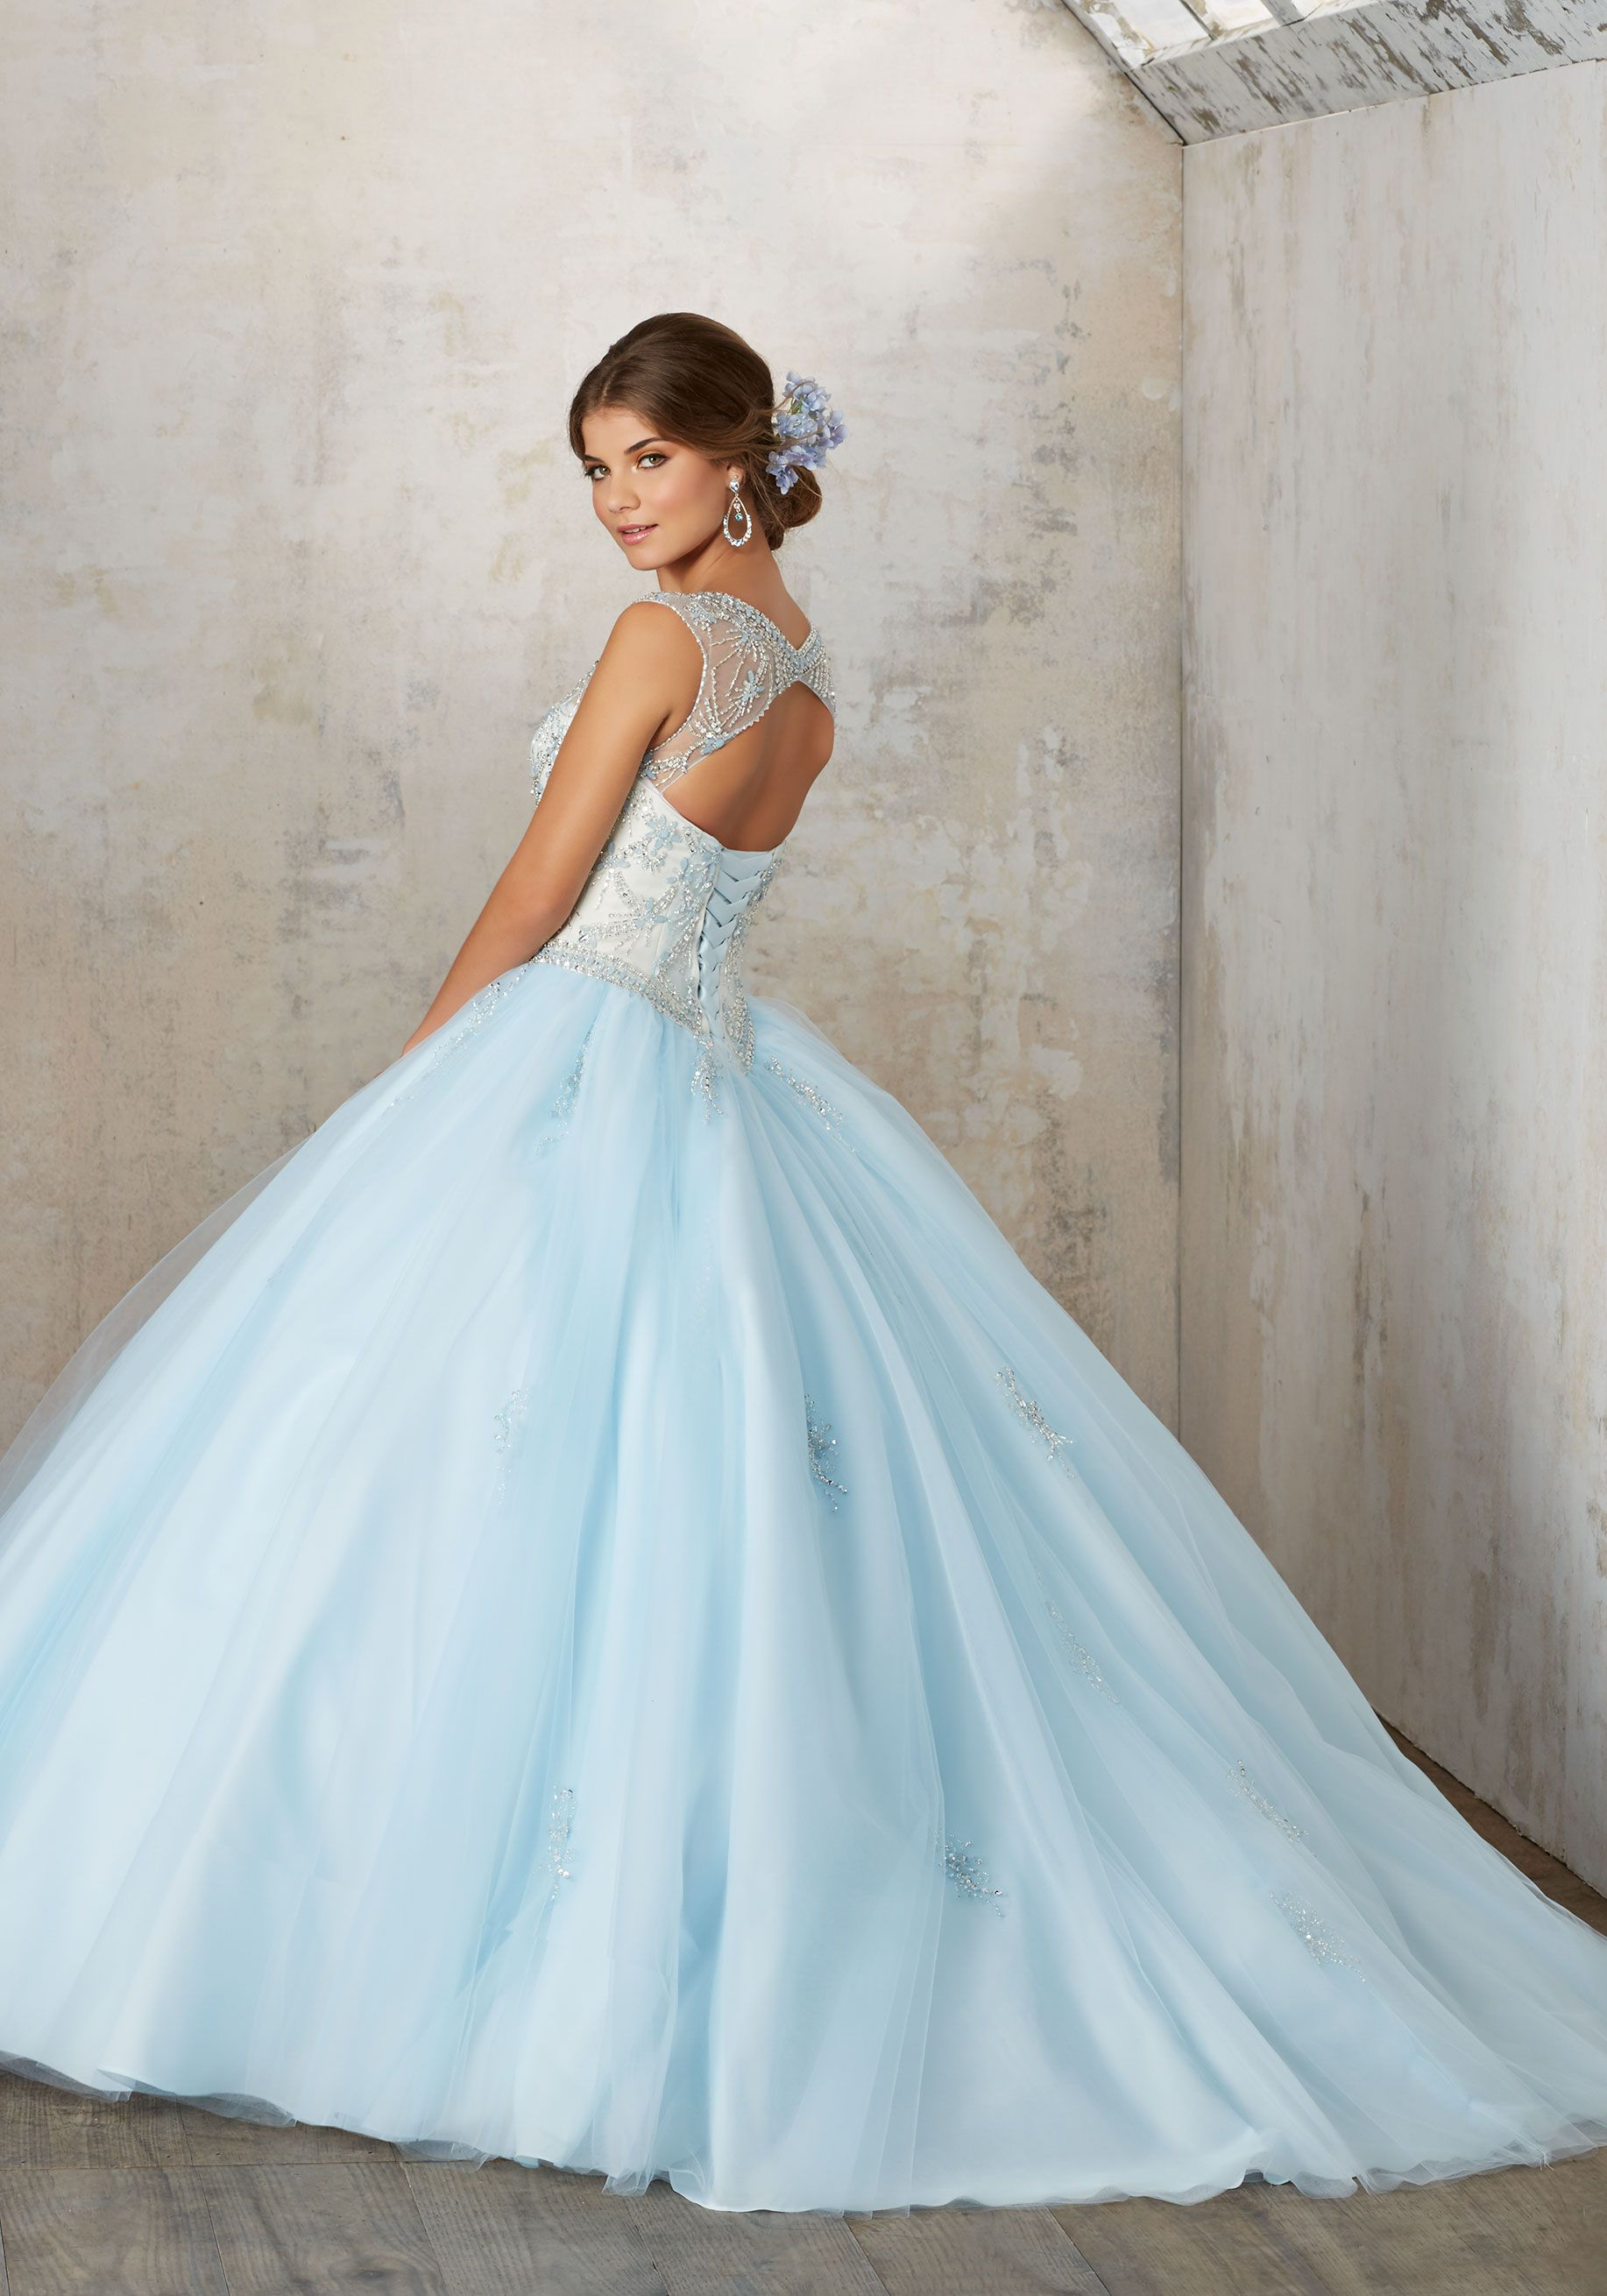 best images about dresses on pinterest gowns dresses and